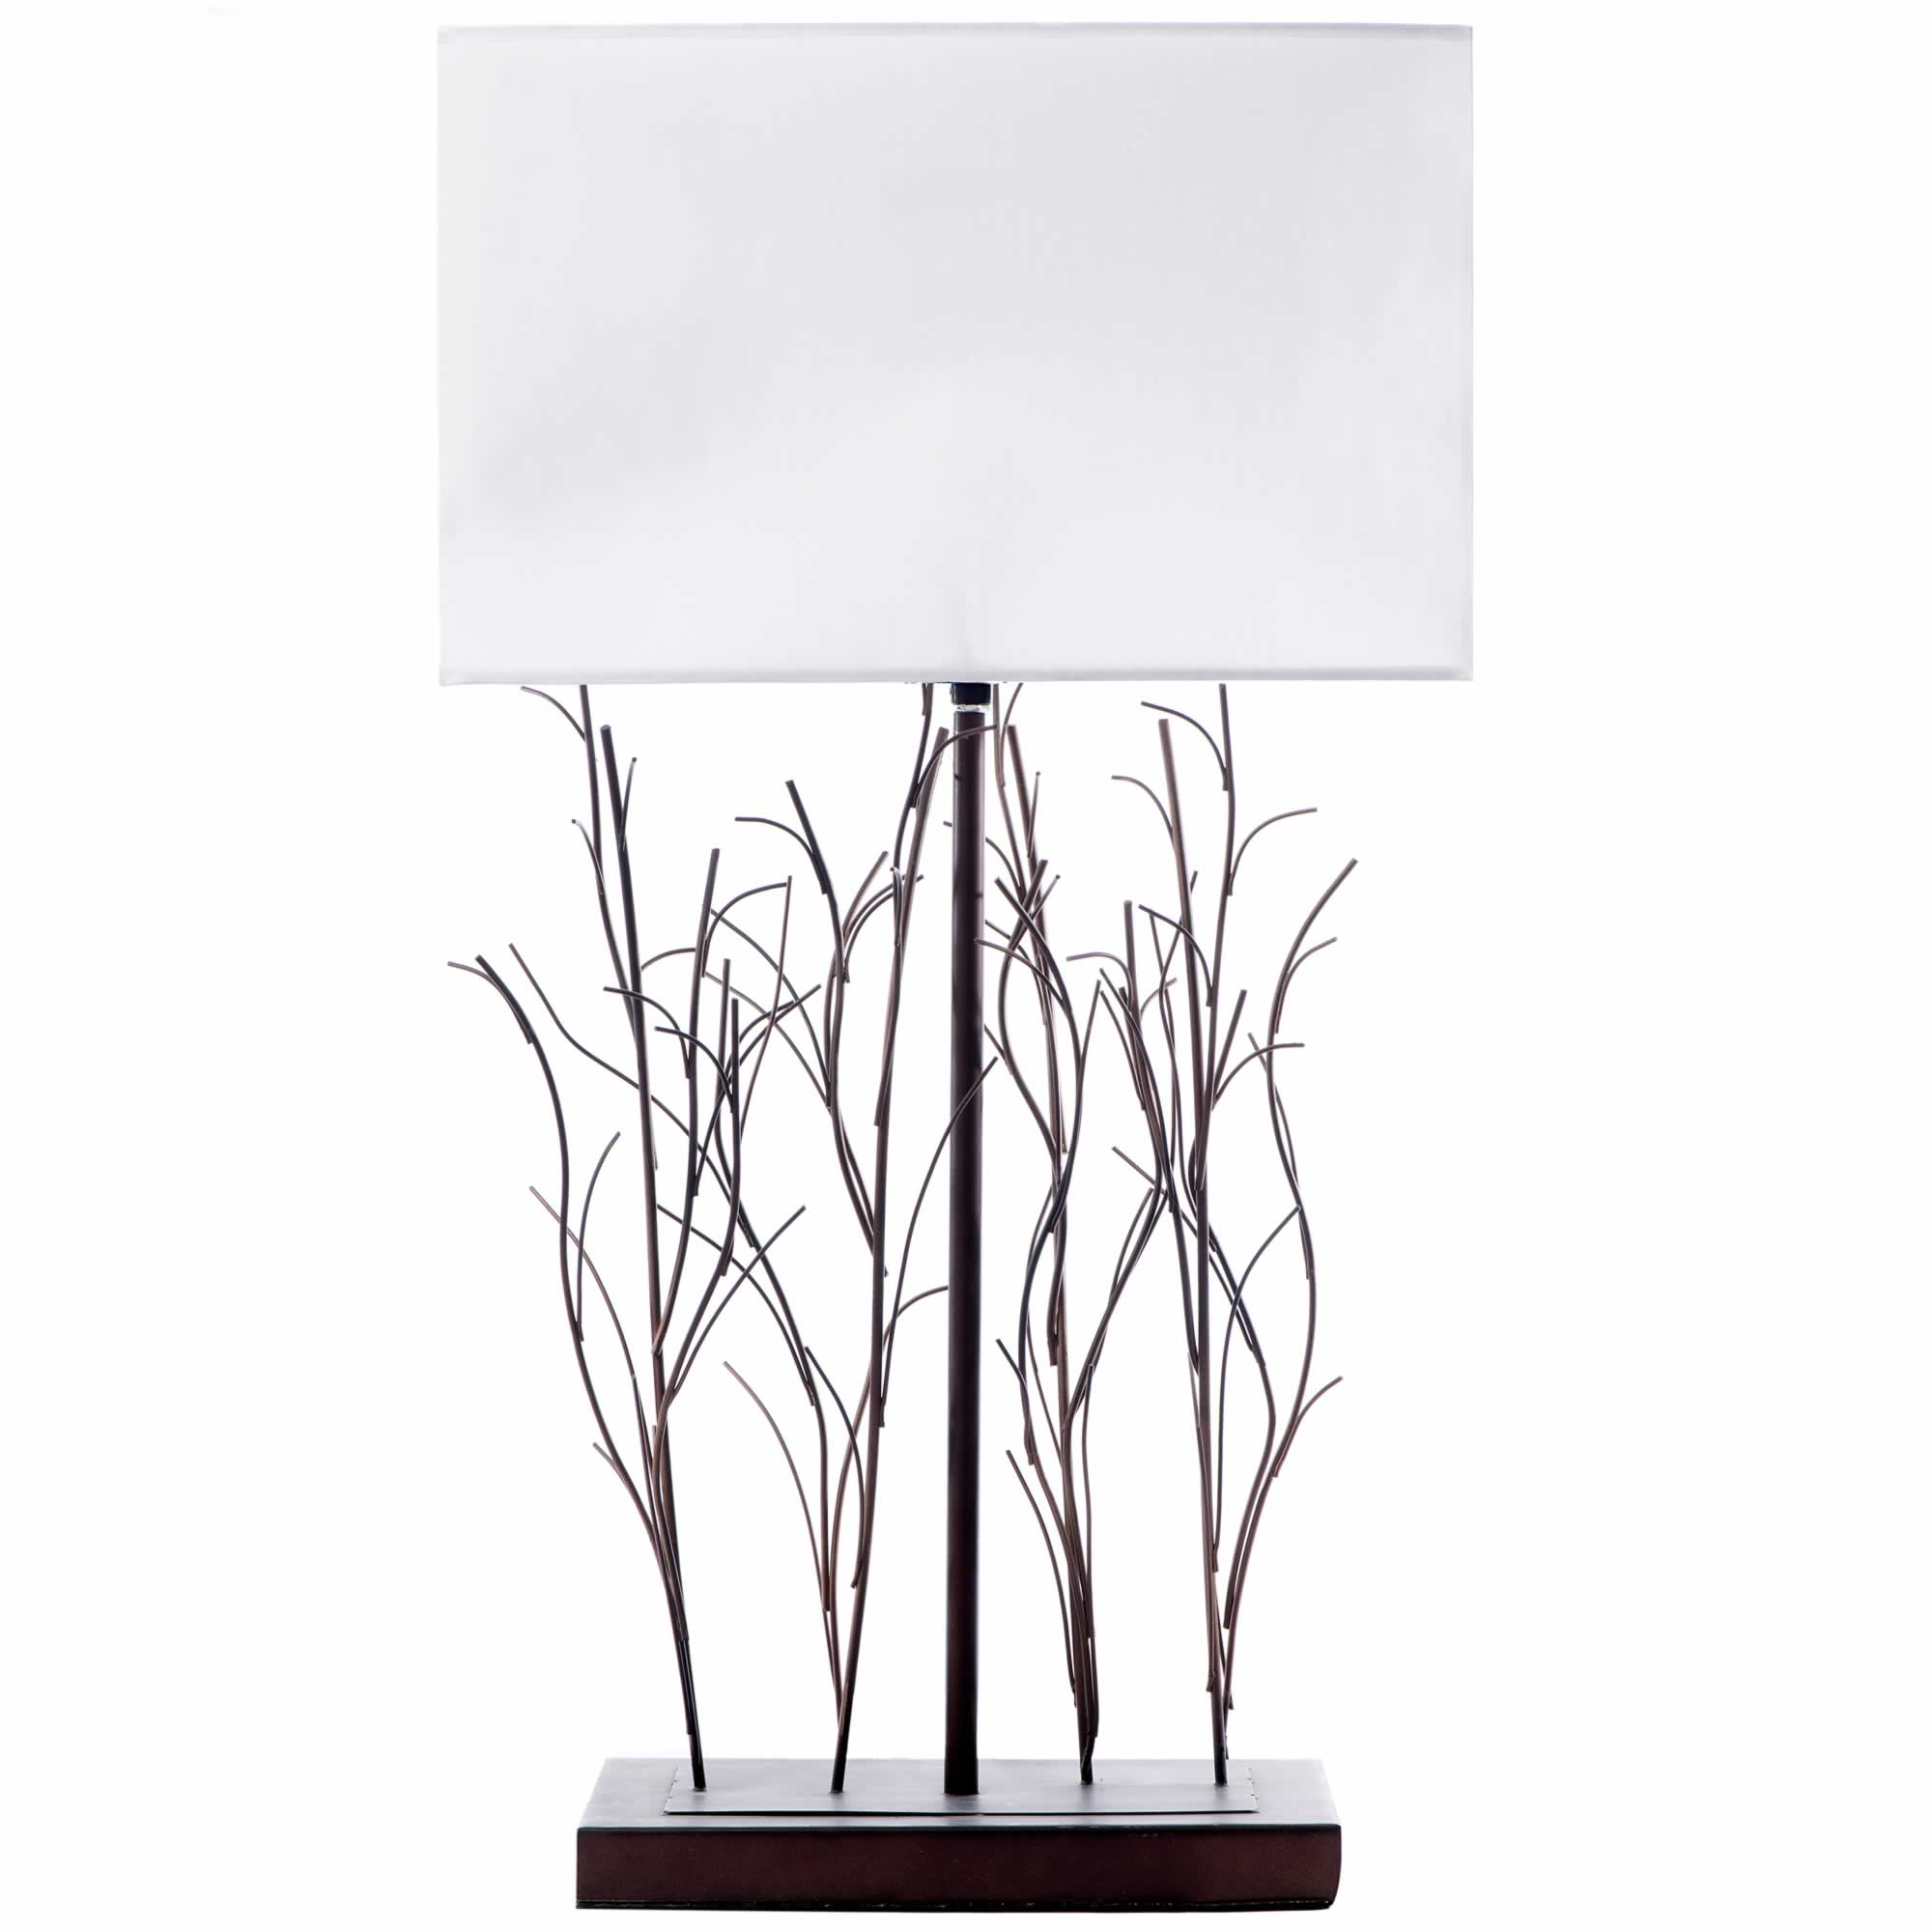 The Grove Table Lamp : SKU TL0002 Contemporary Lamps by Modern Crowd